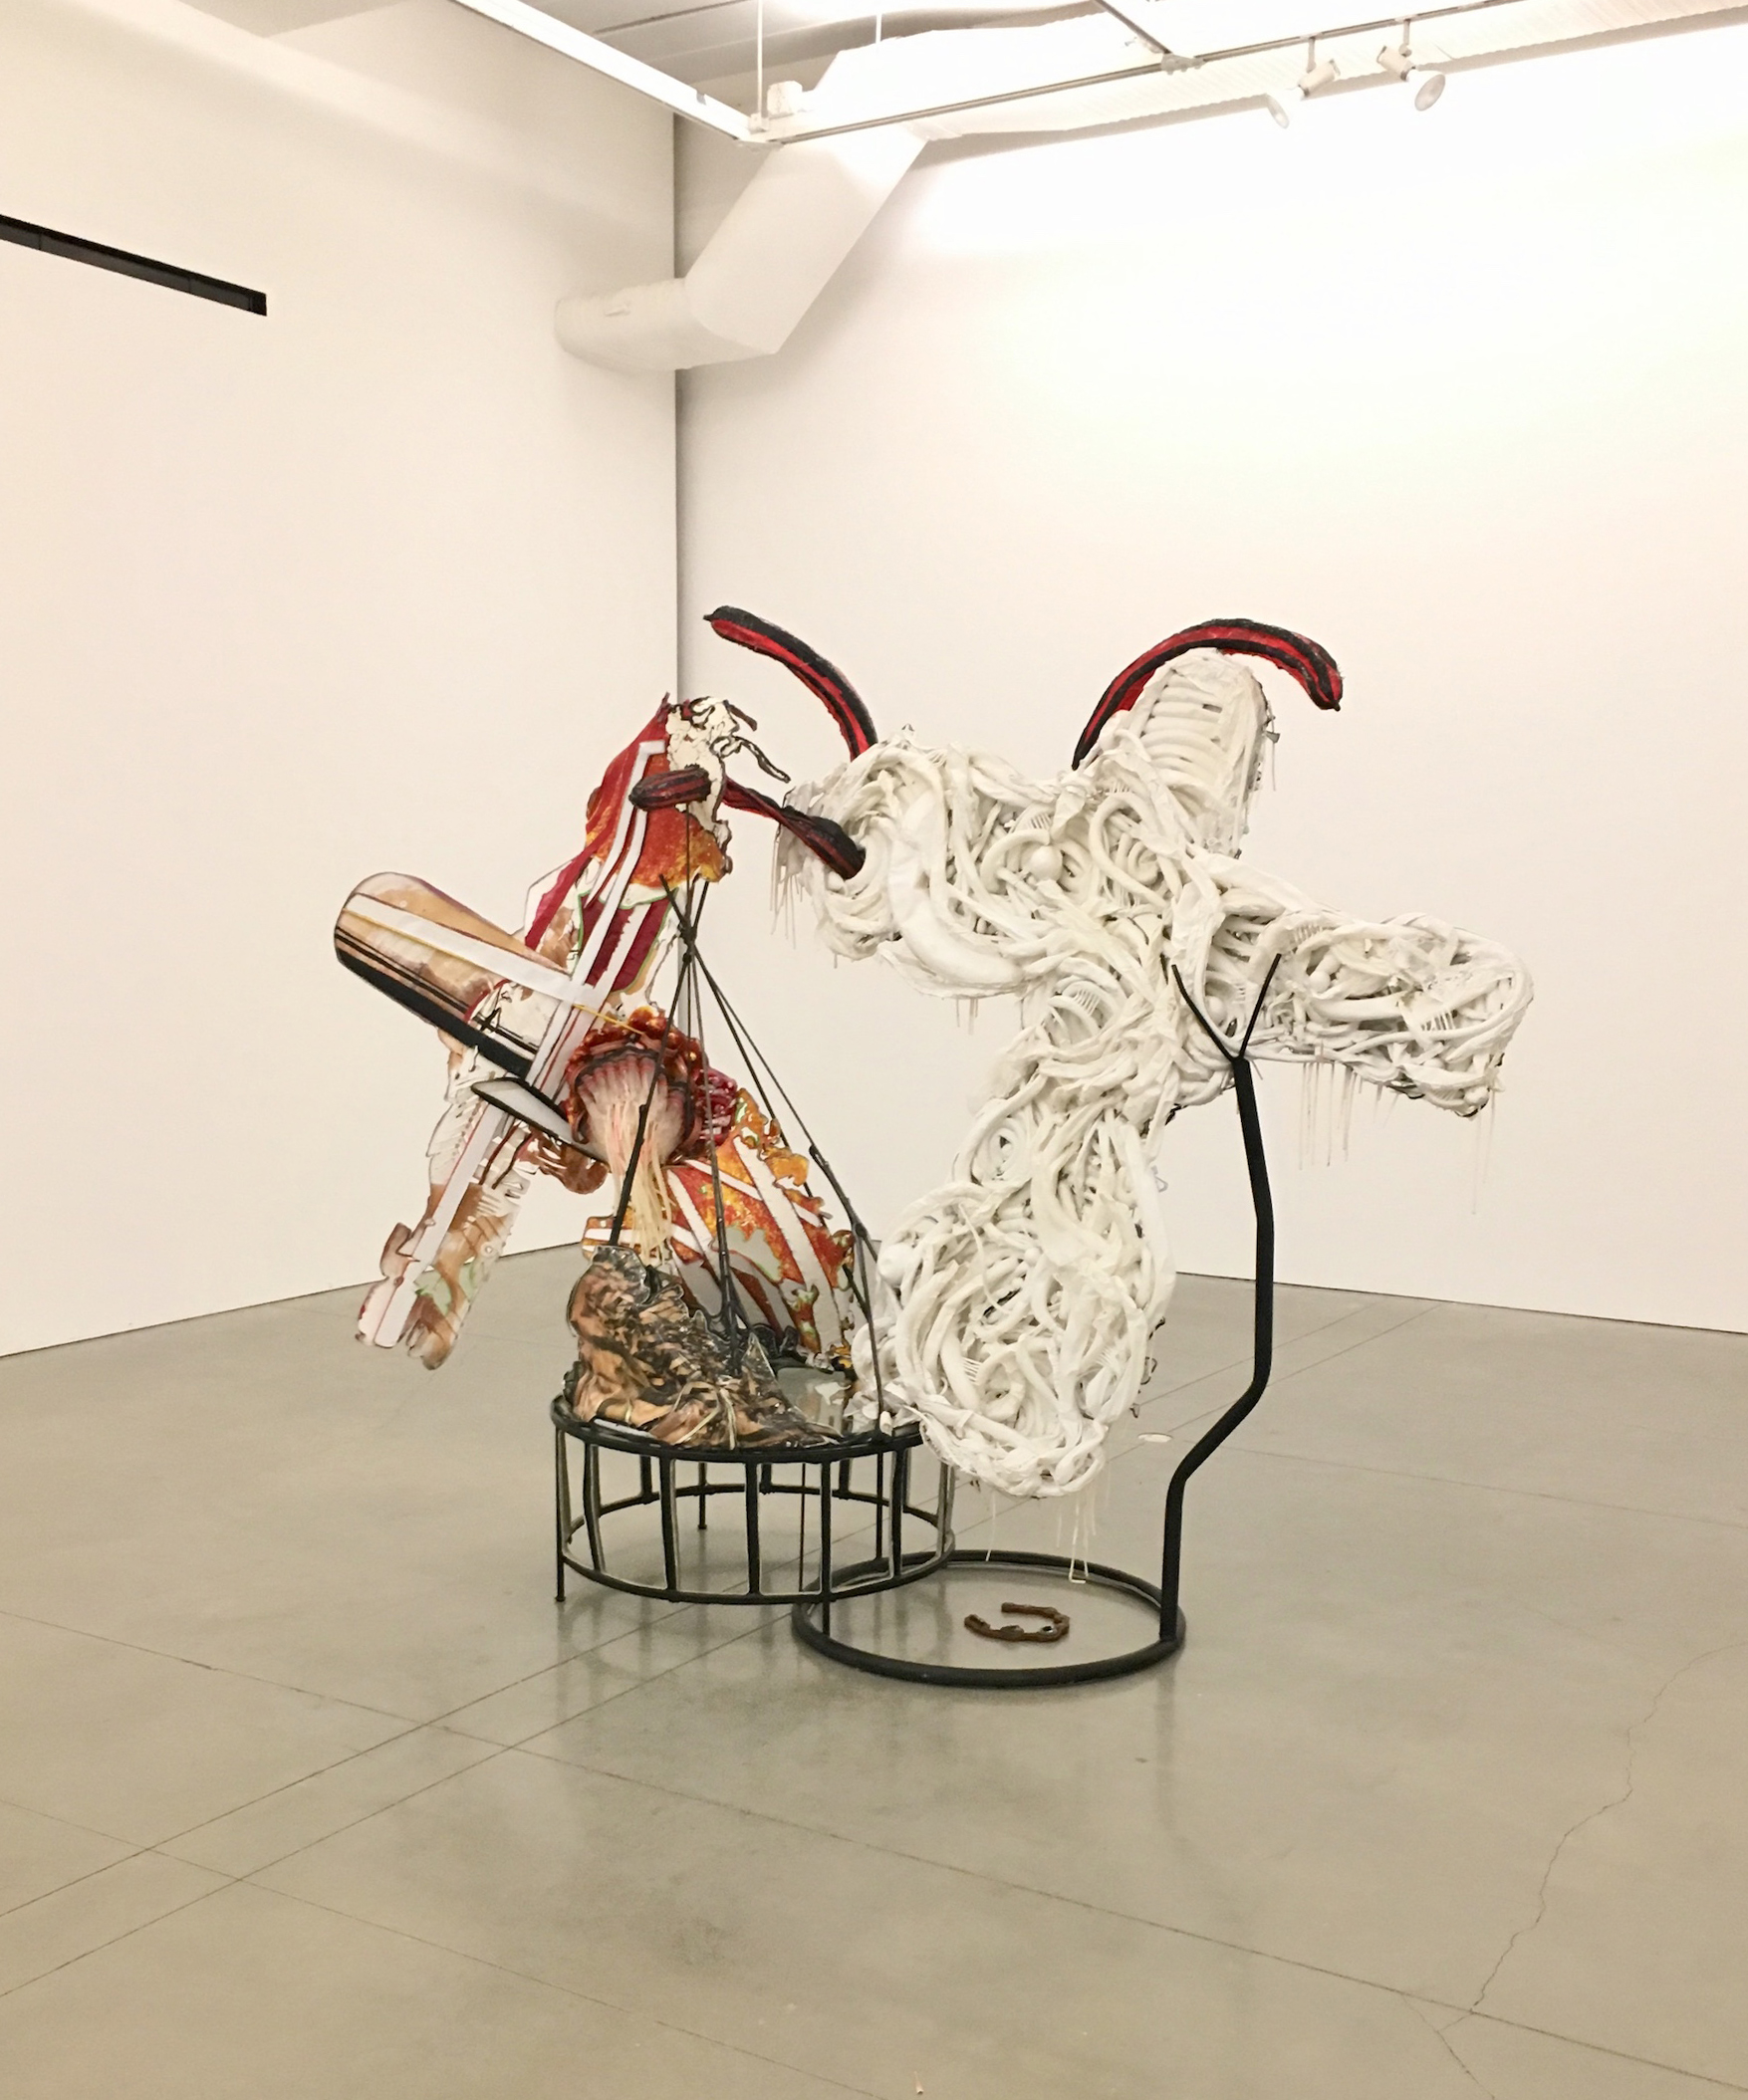 Alicia Piller  Monumental Loss  2018 Vinyl, latex balloons, leather, photos on paper, enamel, welded steel, fabric, plastic straws, glass, broken pipe 84h x 111w x 35d inches AP-008